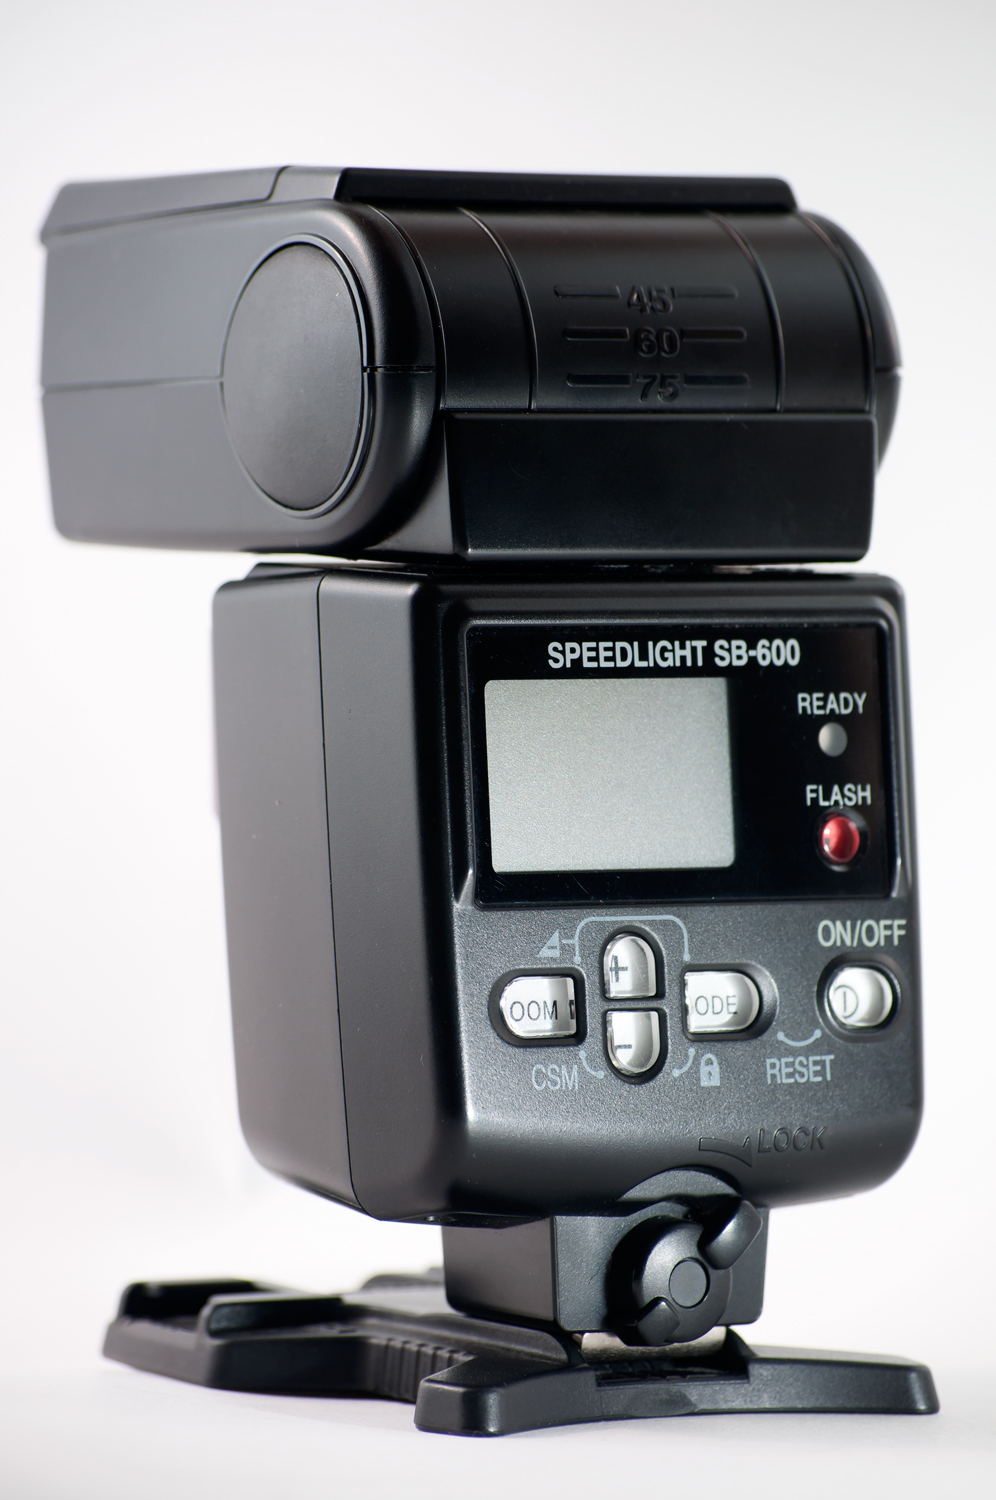 I used to own quite a few Nikon speedlights. I sold every last one of them when the first flash unit with a built in trigger (YN 560iii) appeared on the scene.